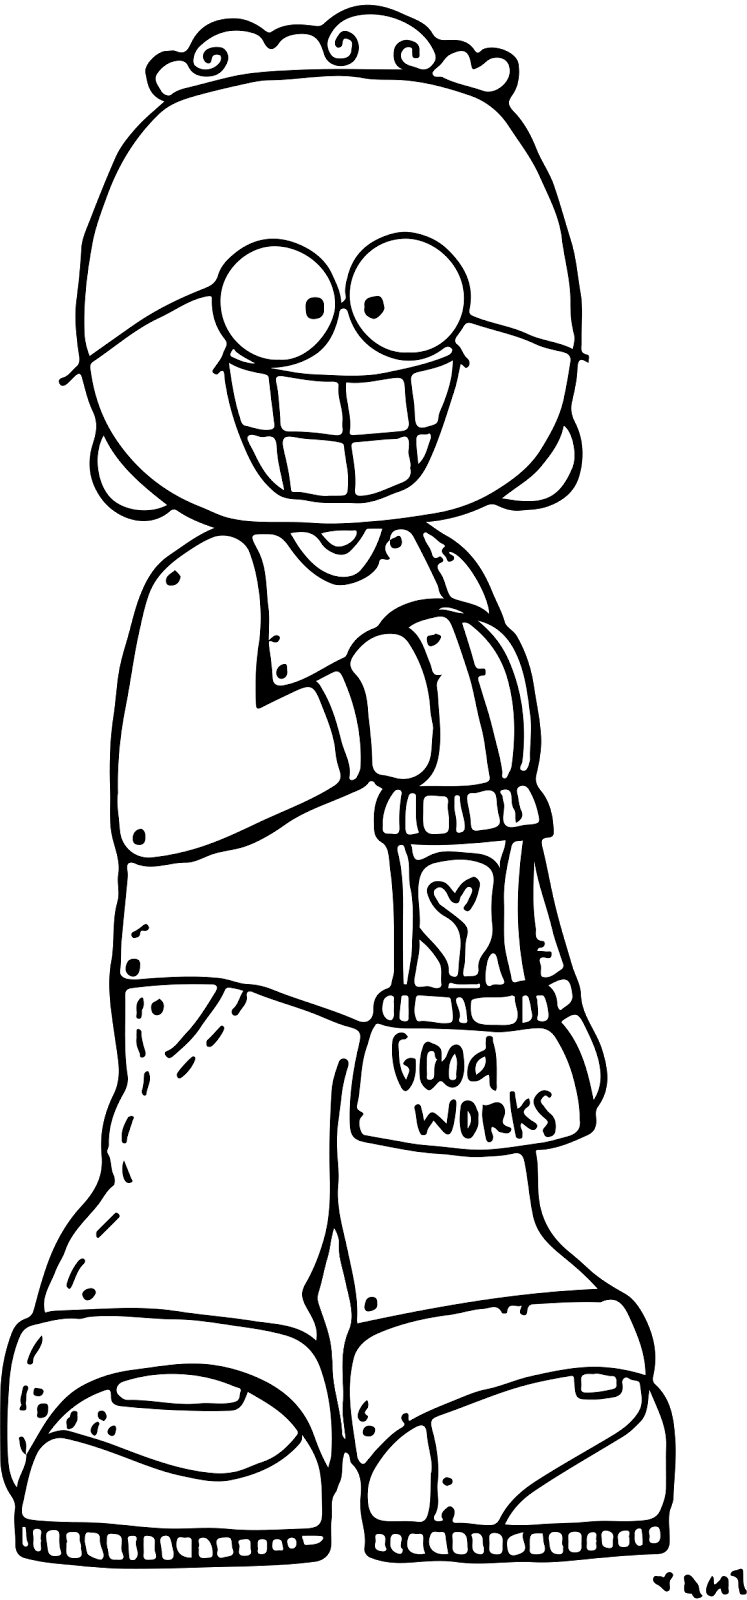 Worry clipart black and white. Melonheadz lds illustrating light